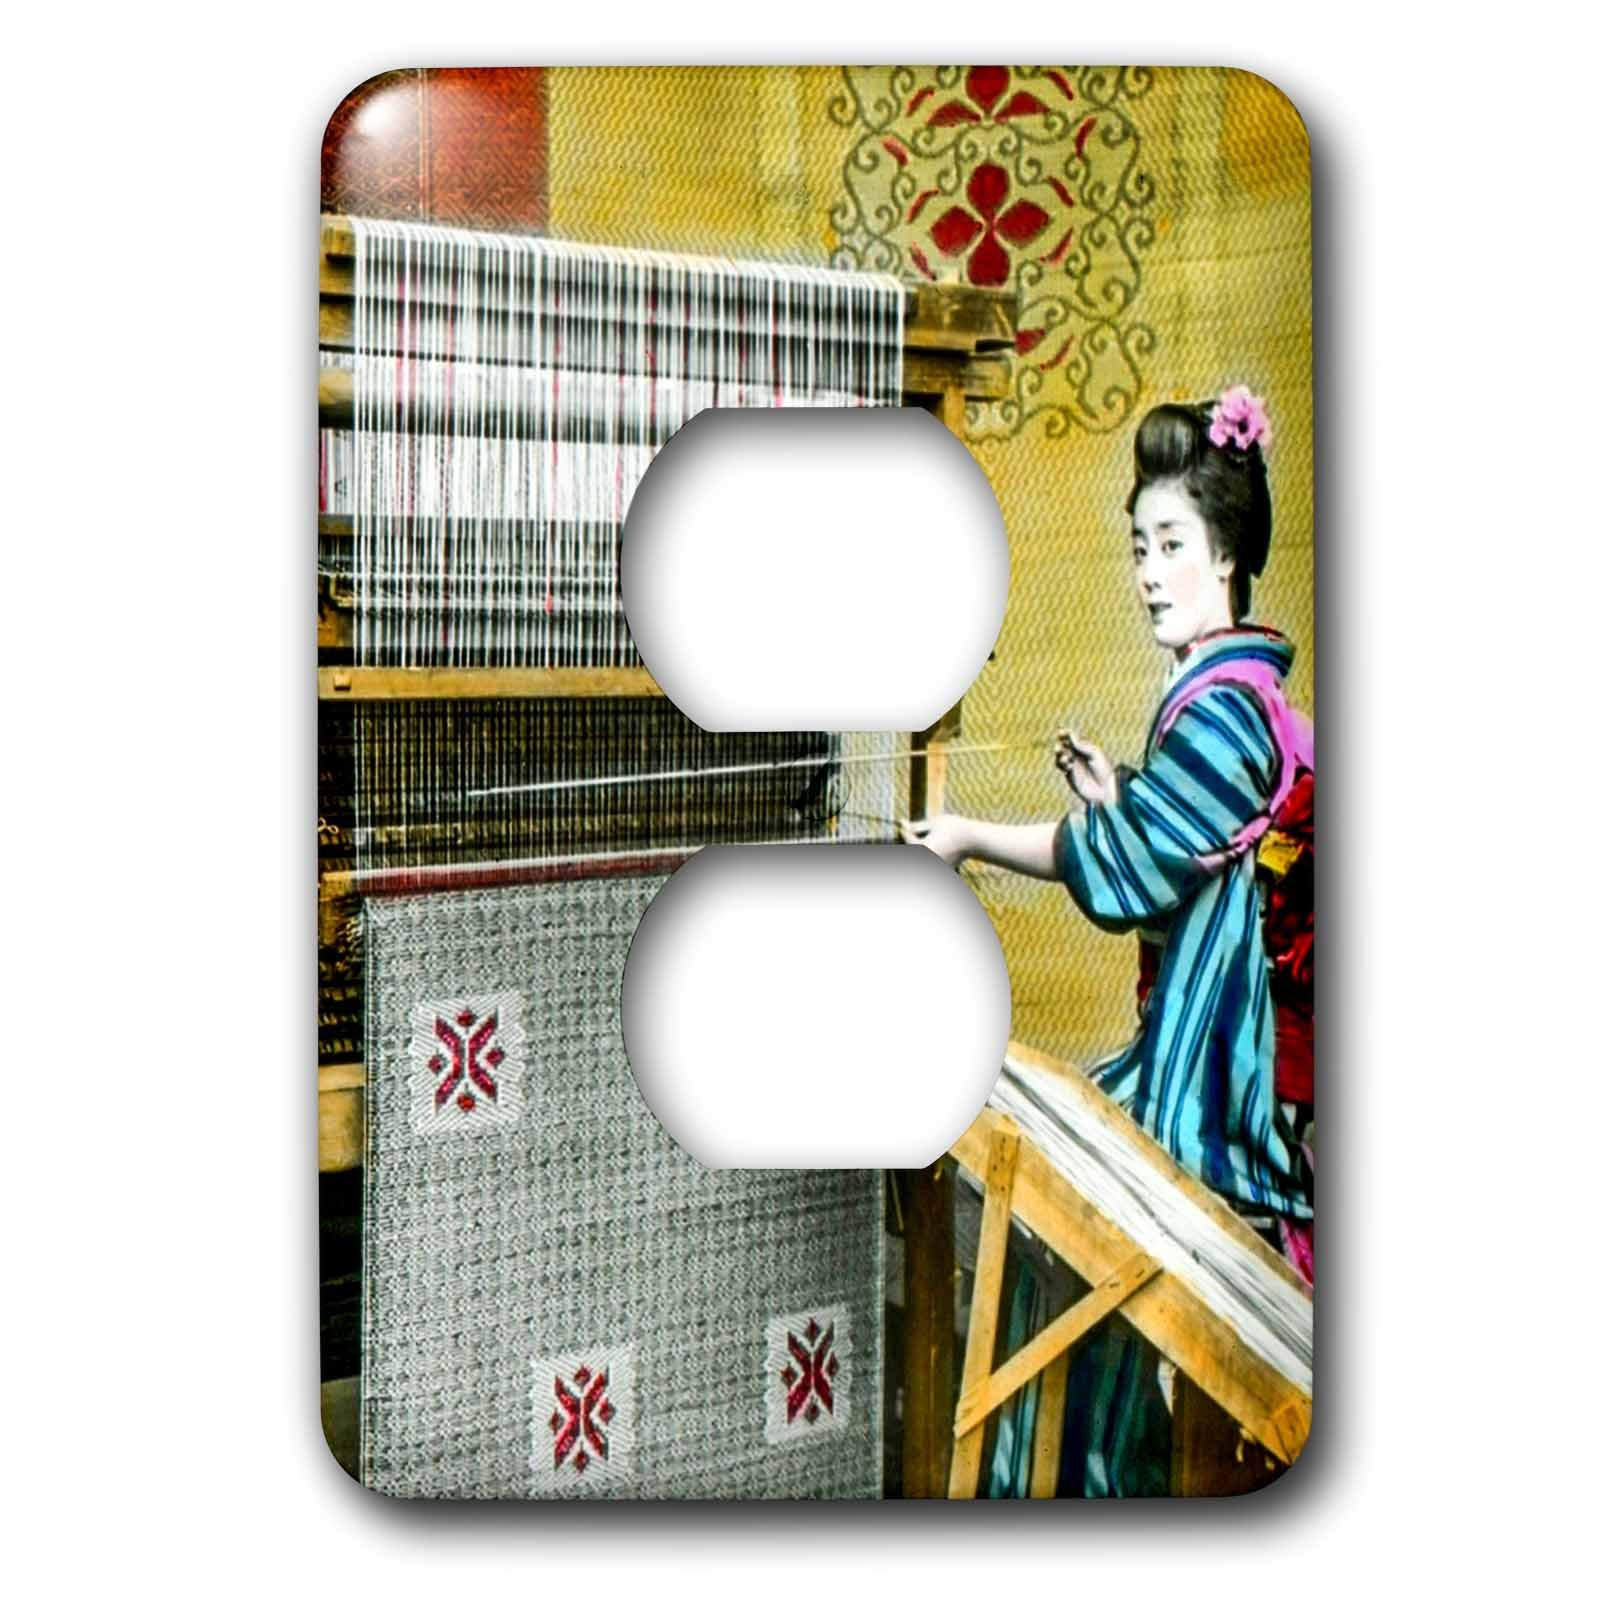 Scenes from the Past Magic Lantern Slides - Vintage Japanese Woman Weaving a Beautiful Rug Hand Colored - Light Switch Covers - 2 plug outlet cover (lsp_246812_6) by 3dRose